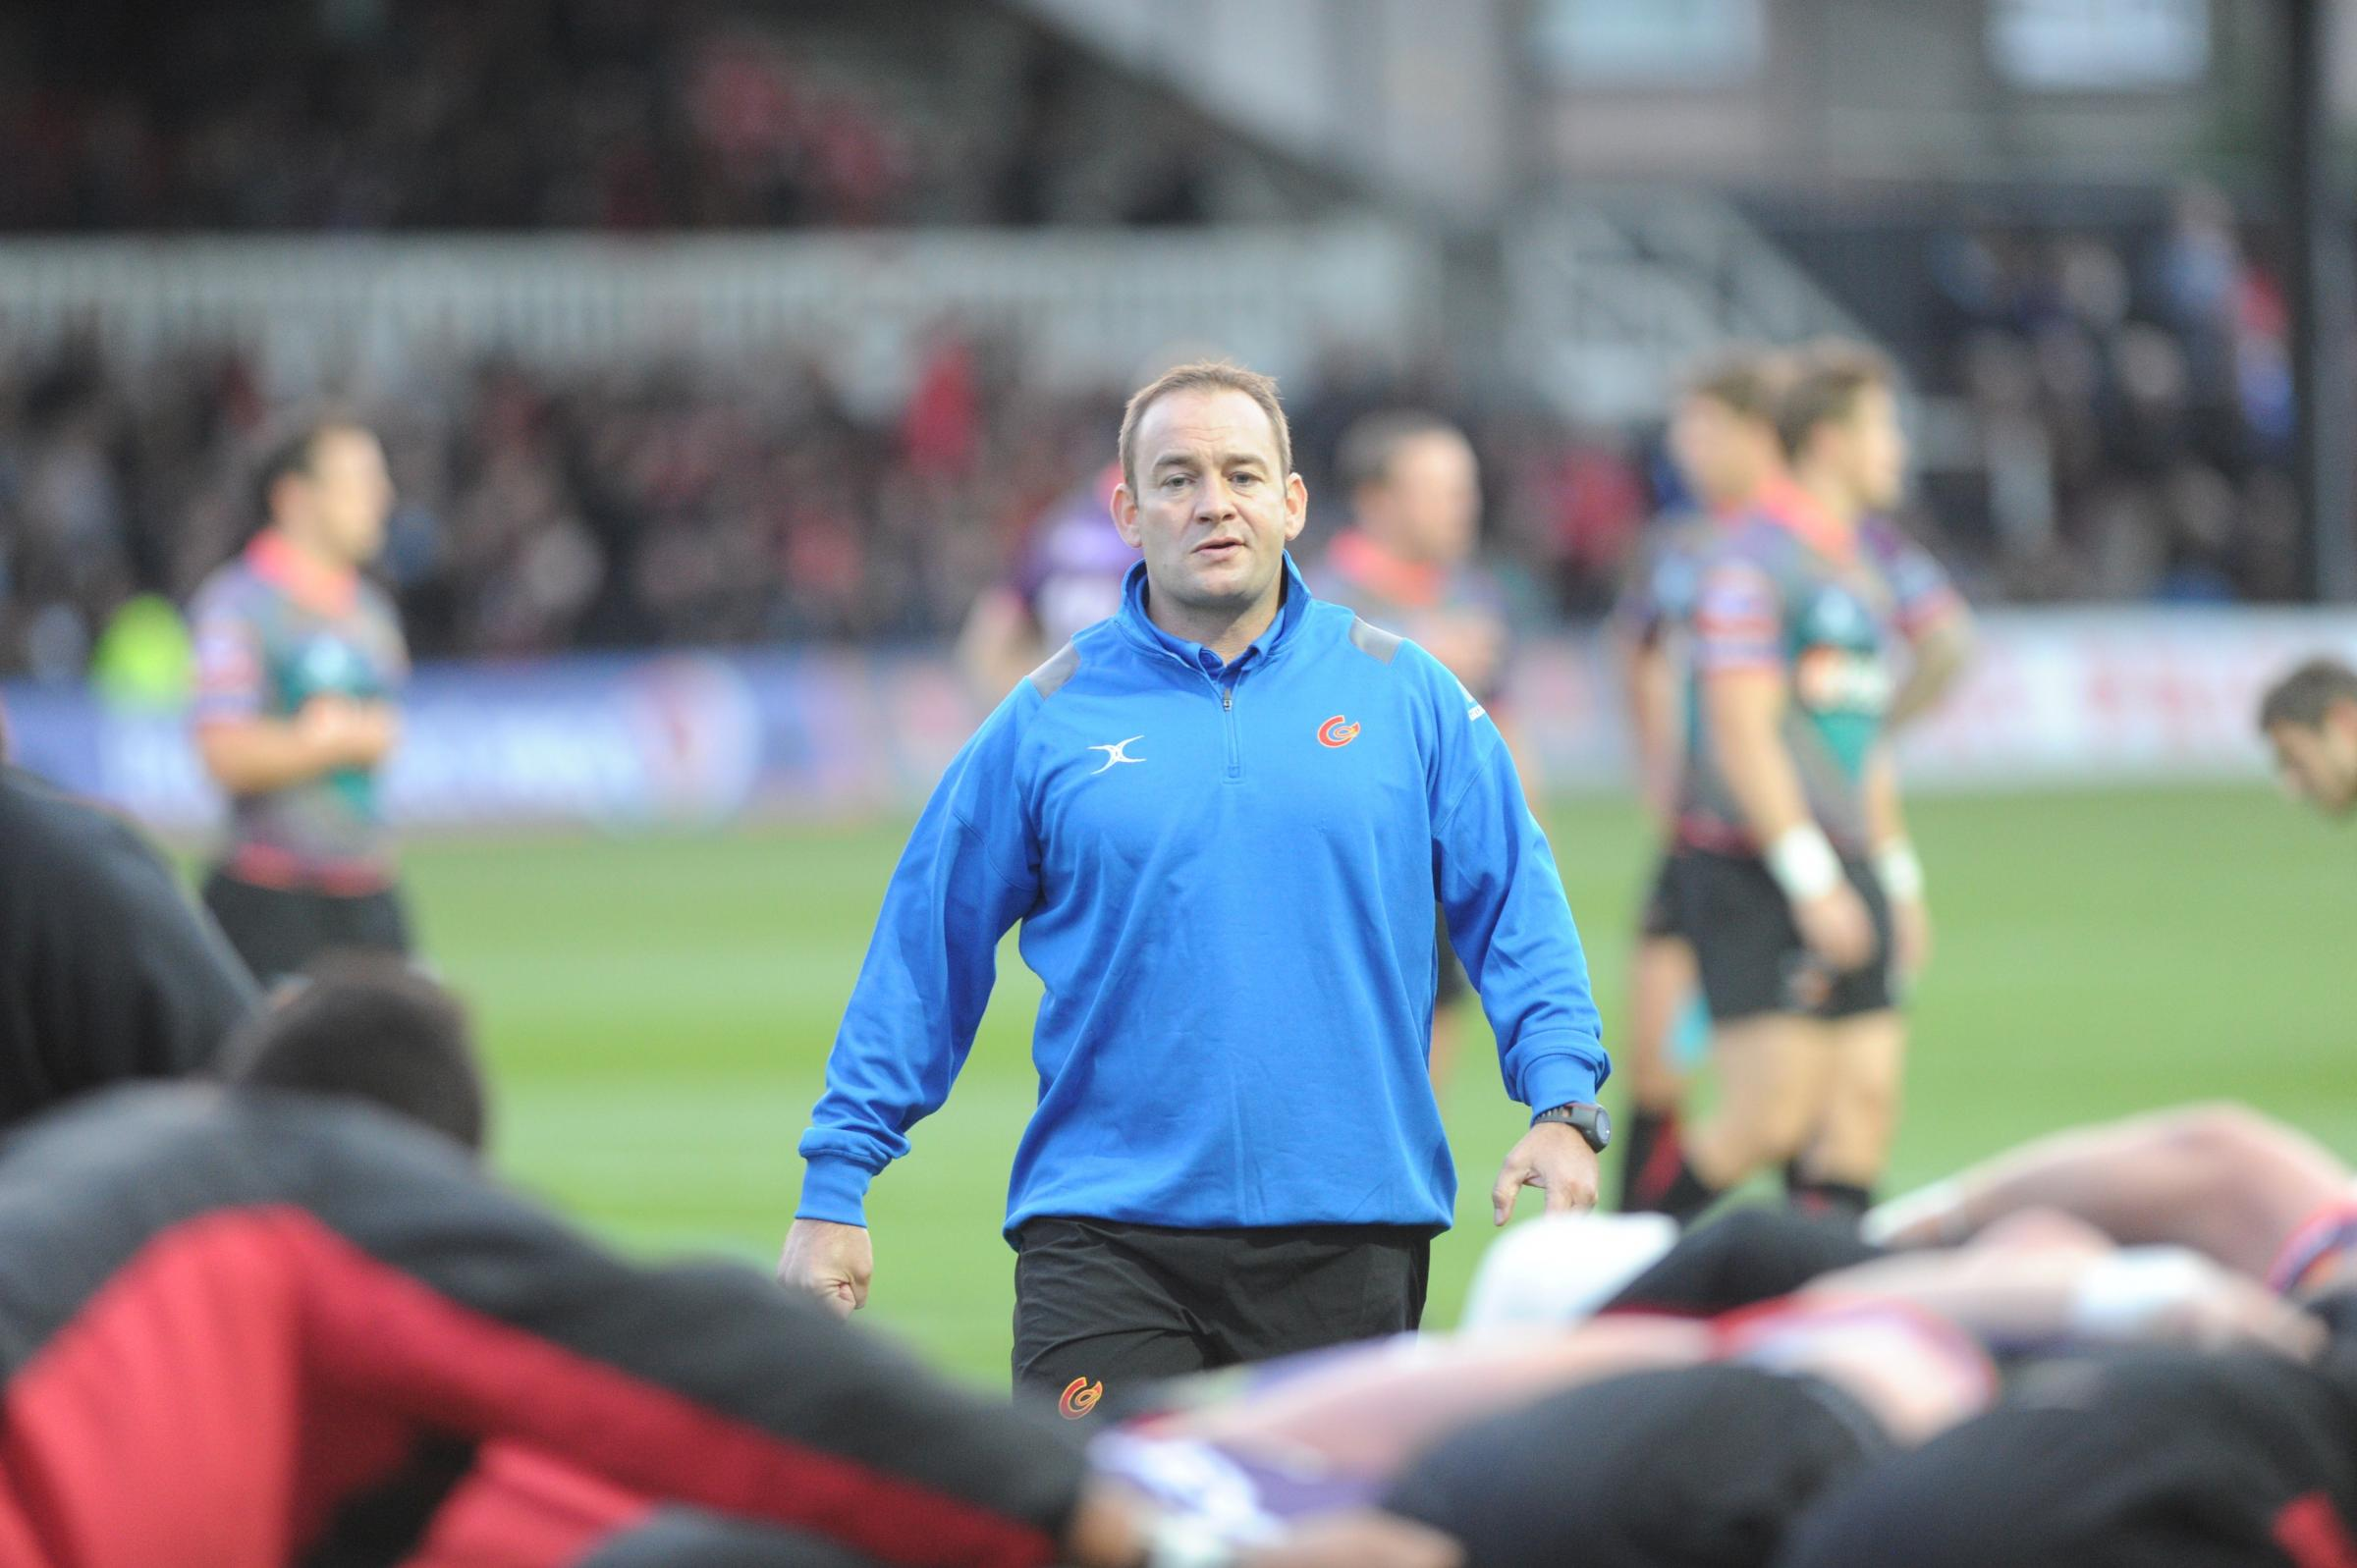 POSITIVE: Newport Gwent Dragons head coach Darren Edwards